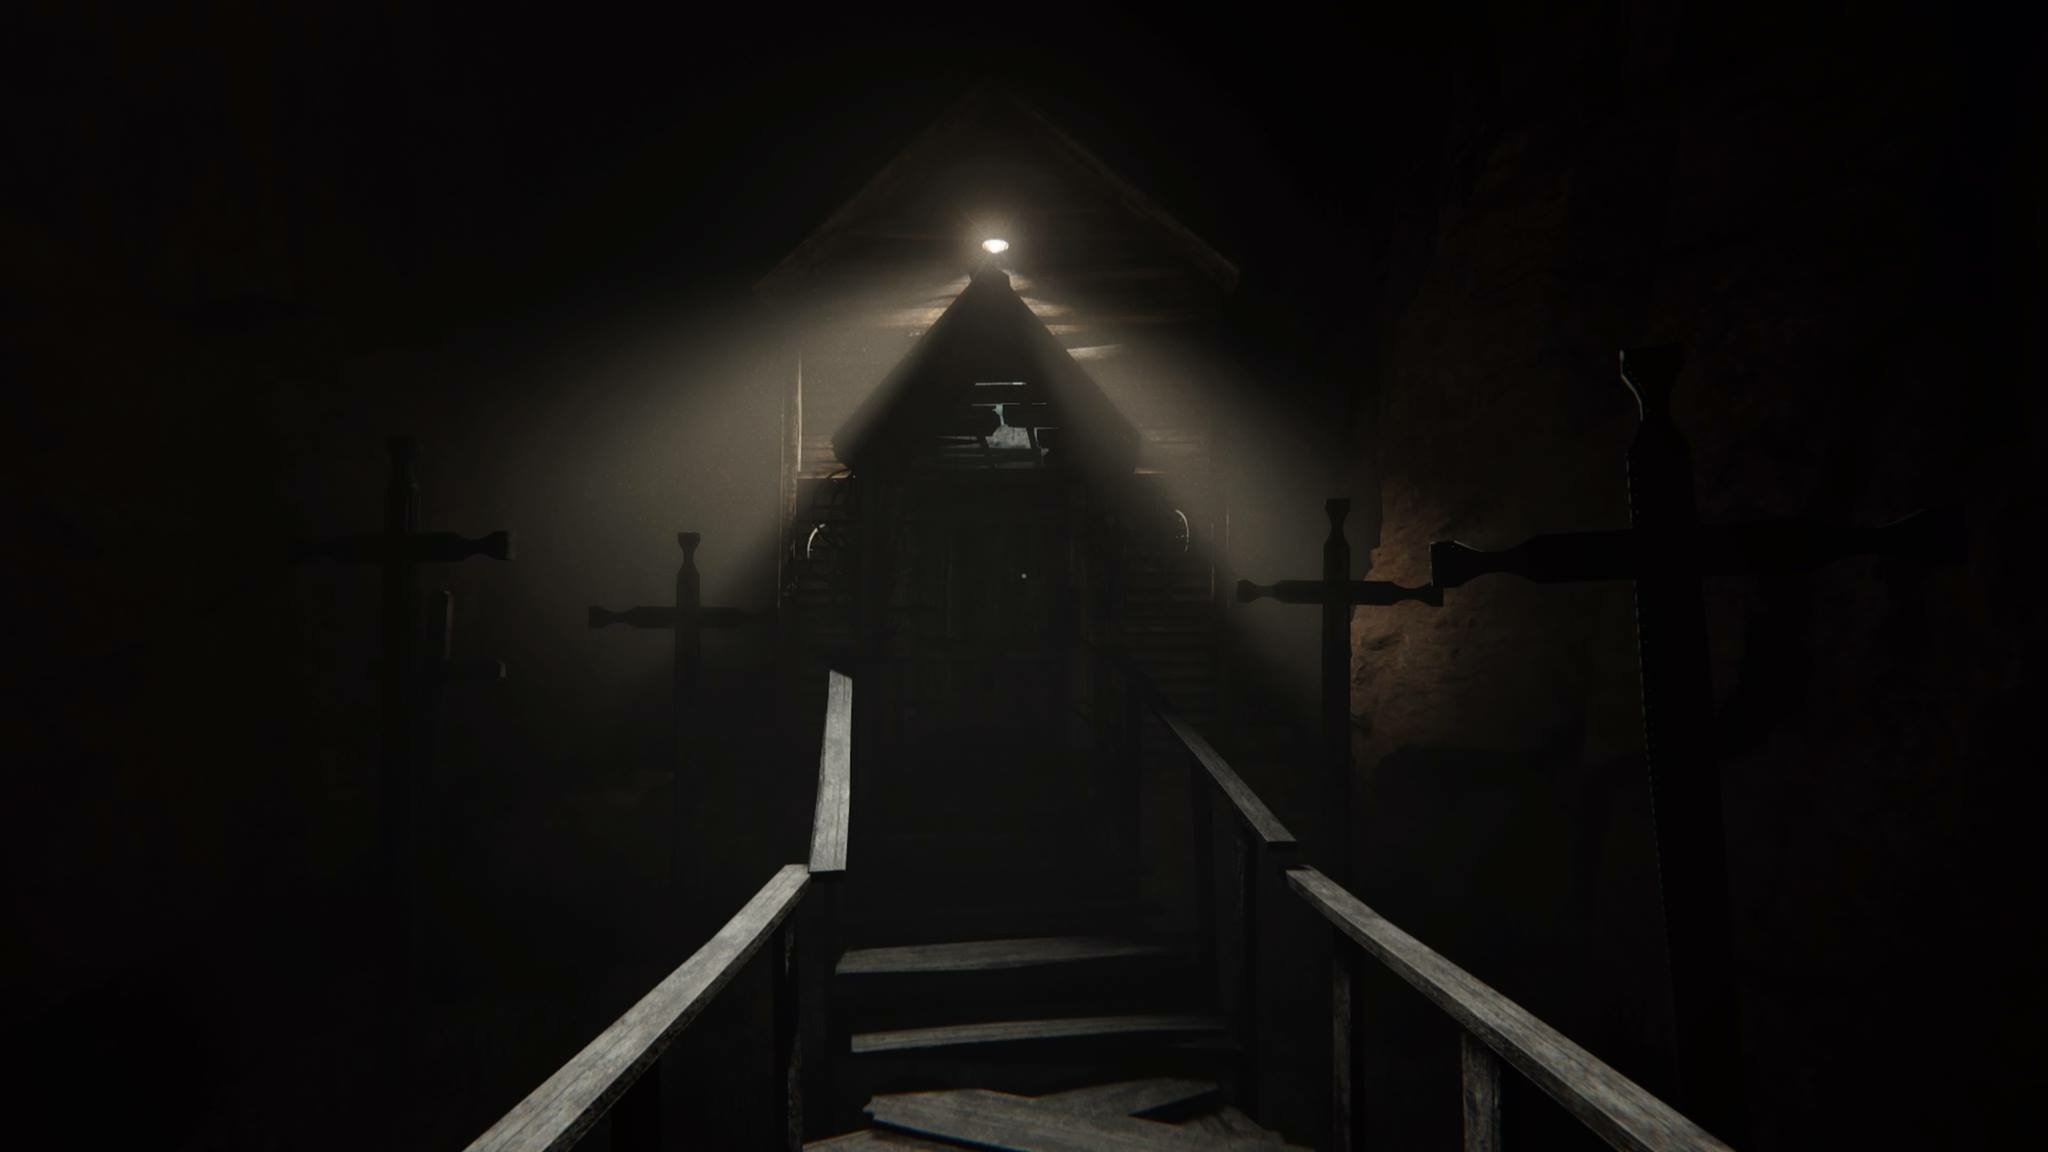 Outlast 2 HD Wallpapers and Background Images   stmednet 2048x1152